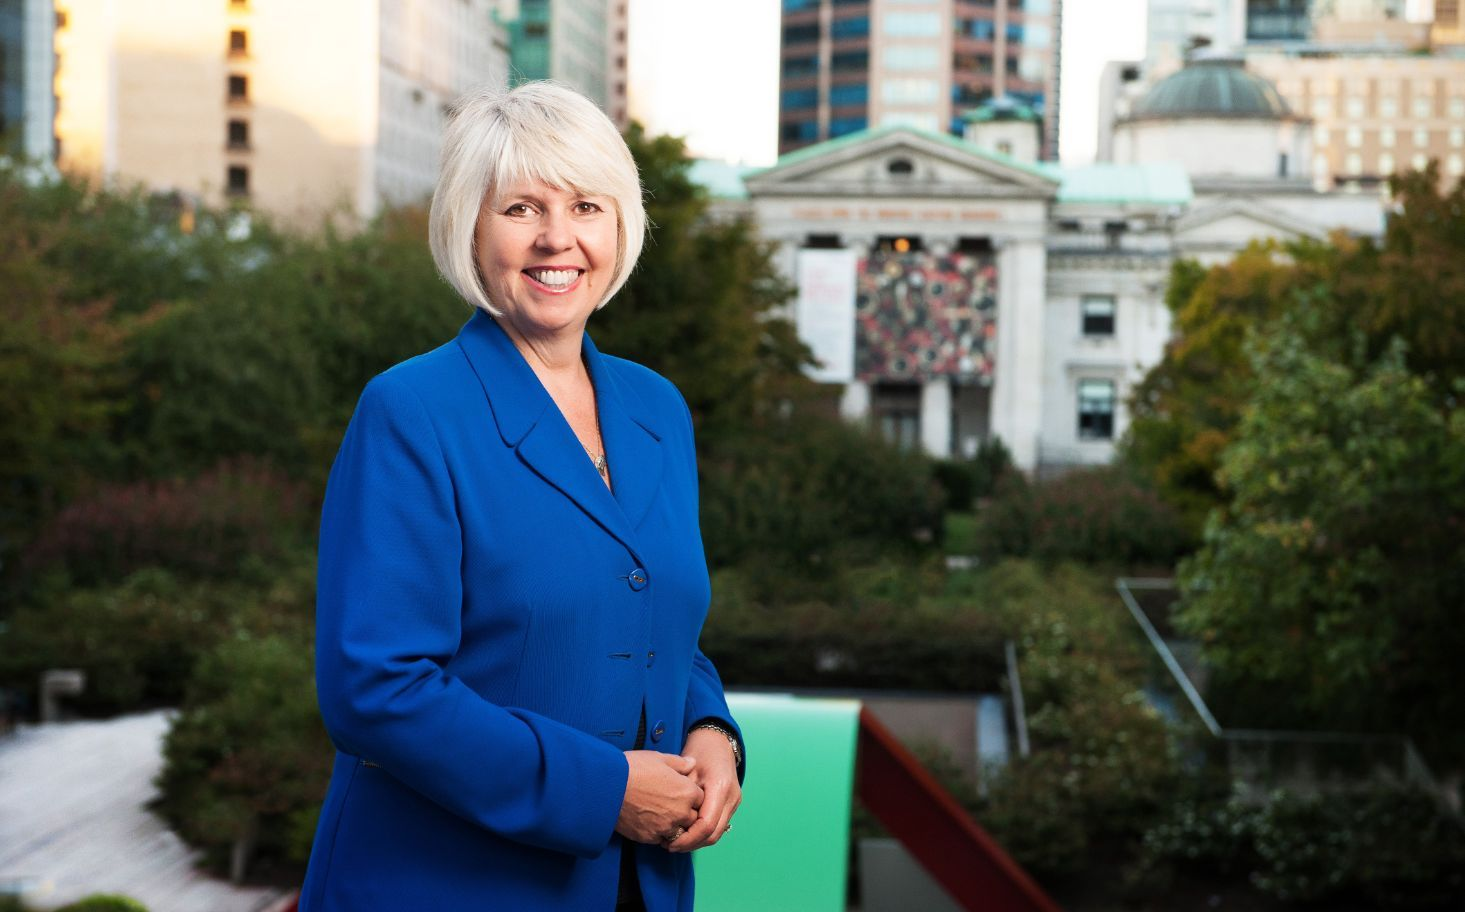 Adriane Carr and Andrea Reimer see eye-to-eye on the Kinder Morgan pipeline